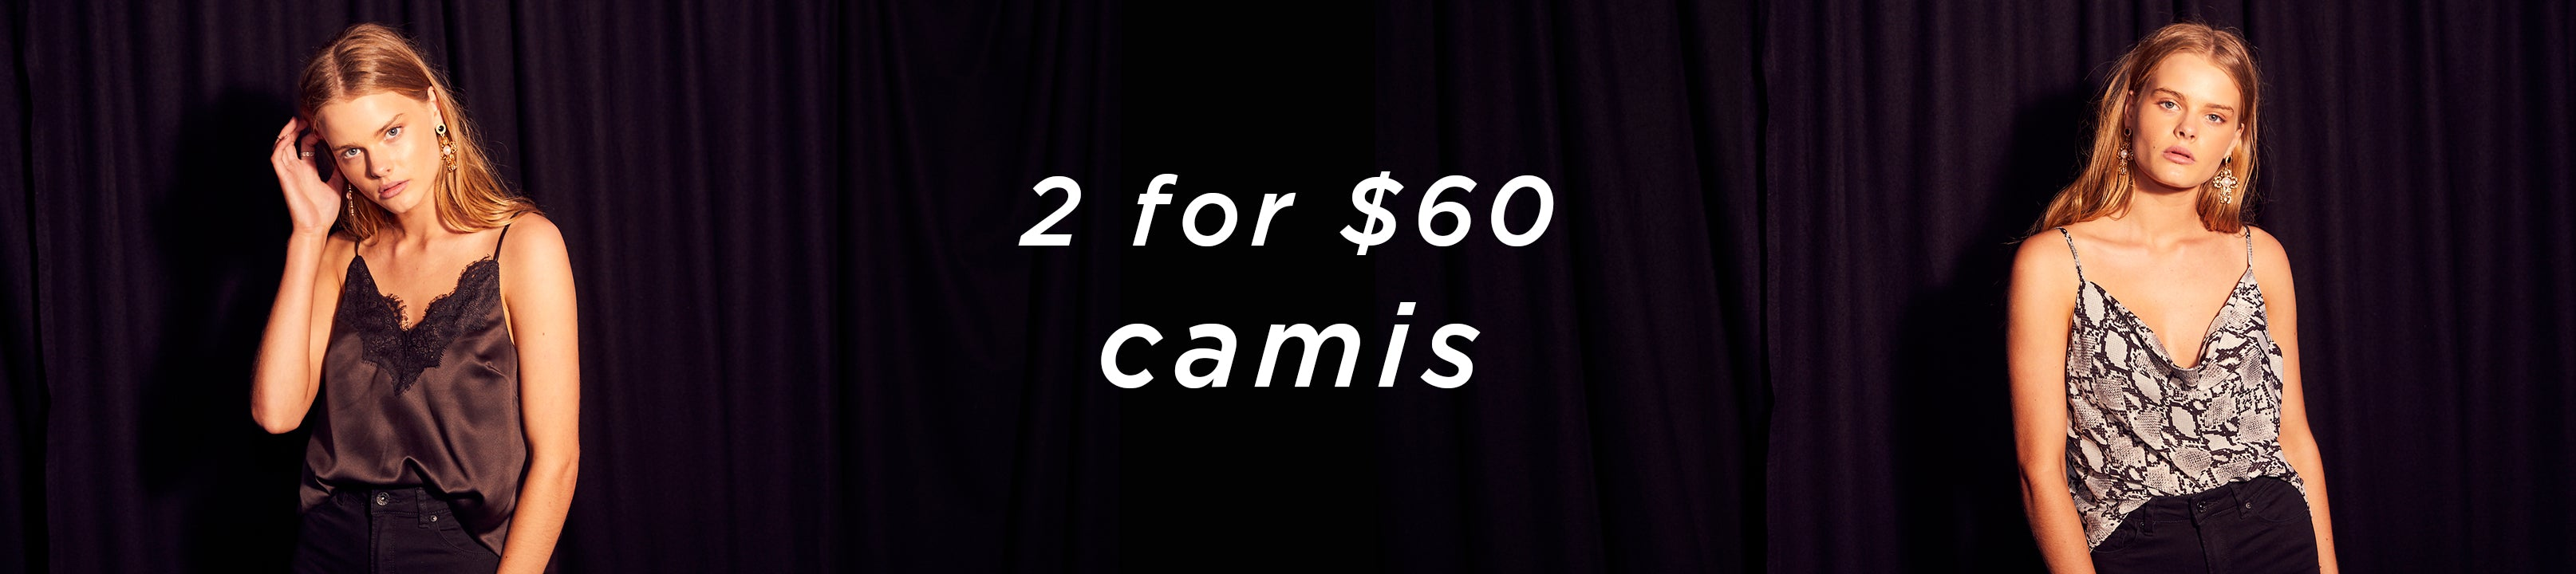 2 for $60 Camis